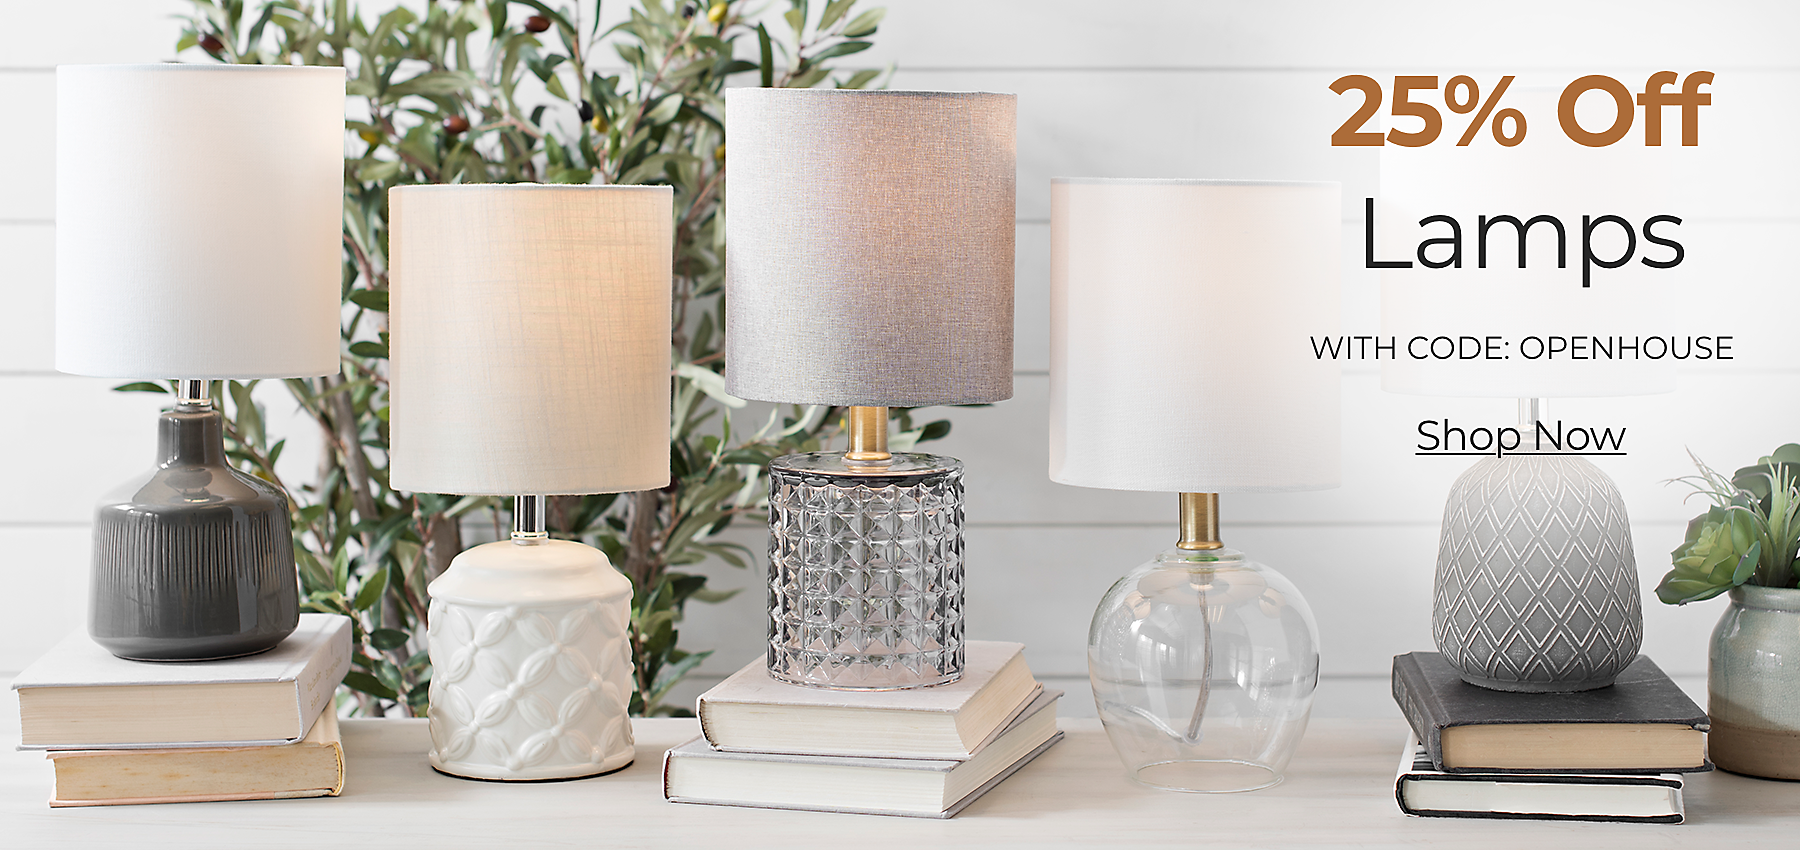 Lamps 25% Off with Code: OPENHOUSE Shop Now